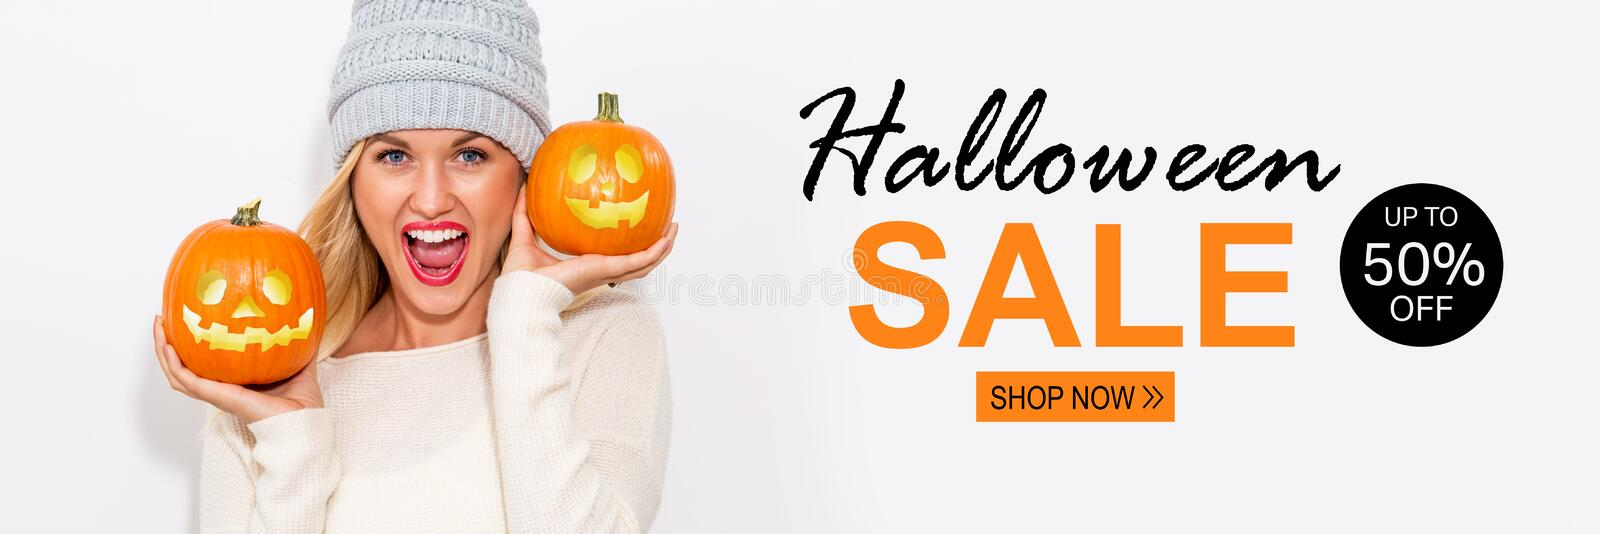 Halloween sale with woman holding pumpkins royalty free stock photo